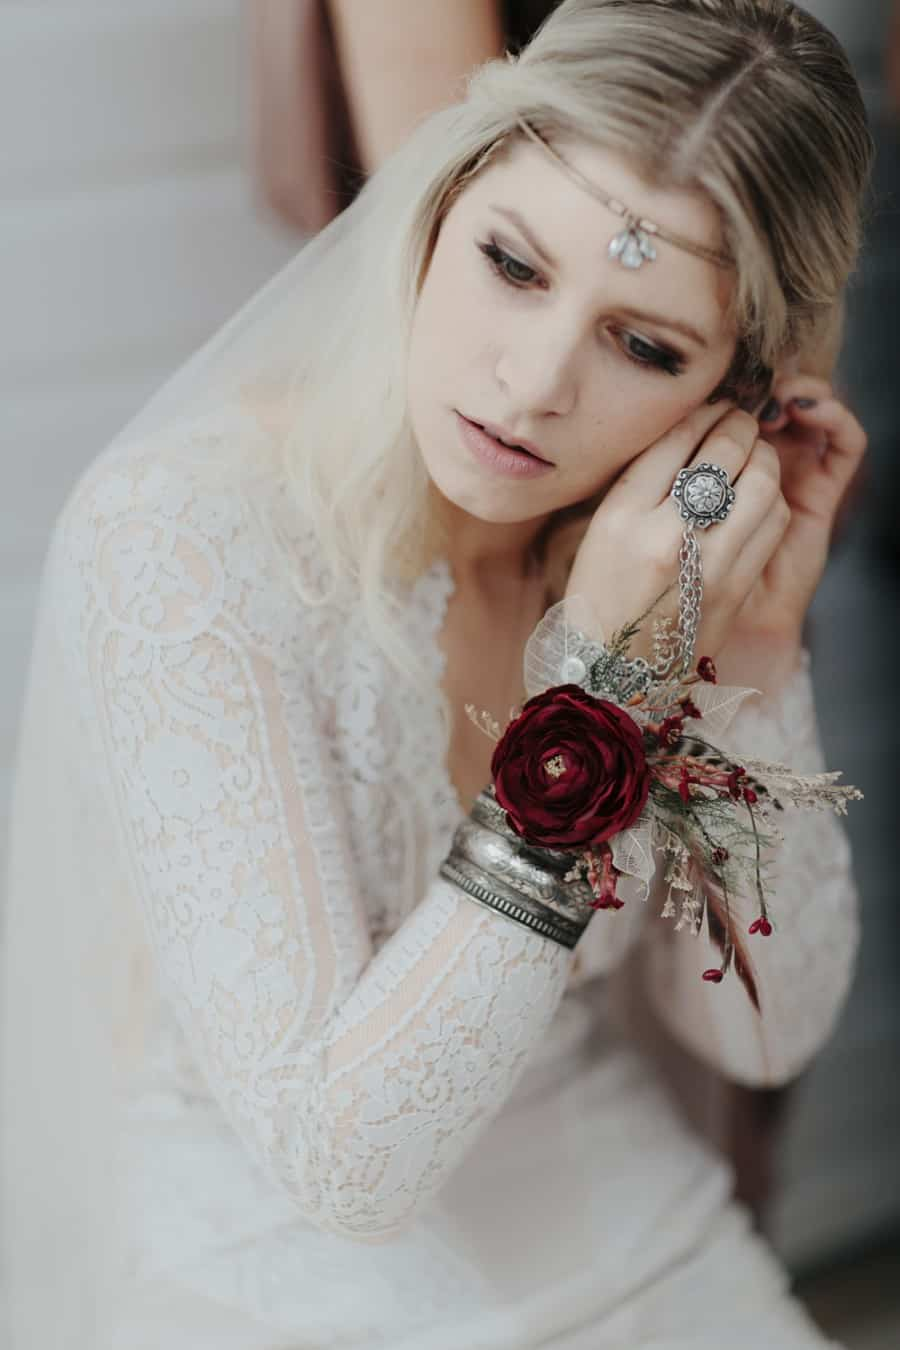 bohemian bride with ornate cuff | Photography by Oli Sansom